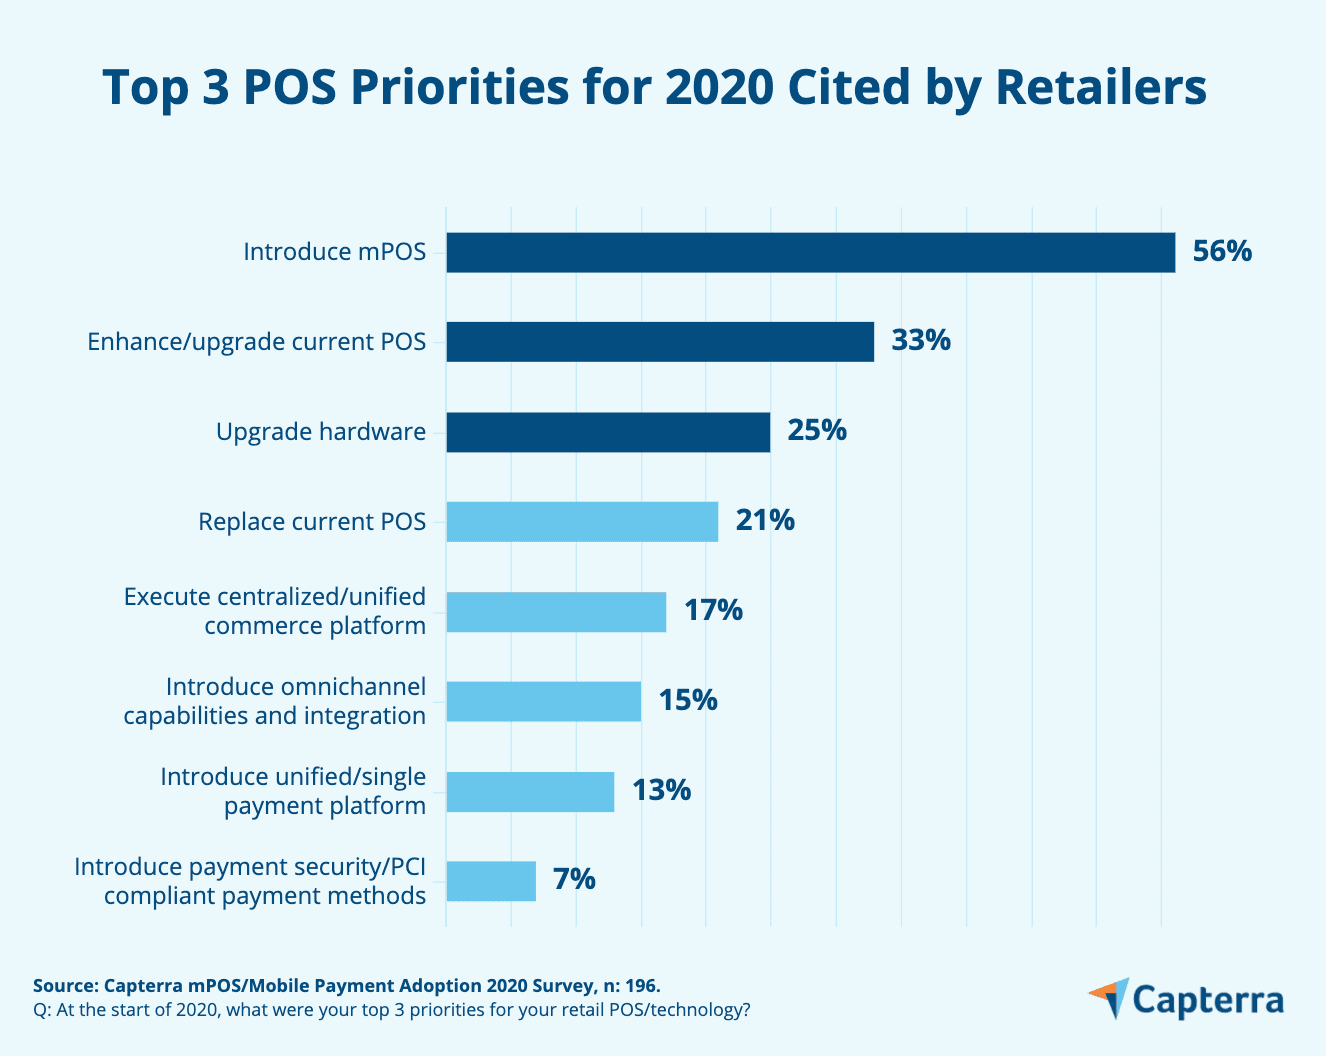 Top Point of Sale Sytem priorities, mPOS is a top priority for retailers